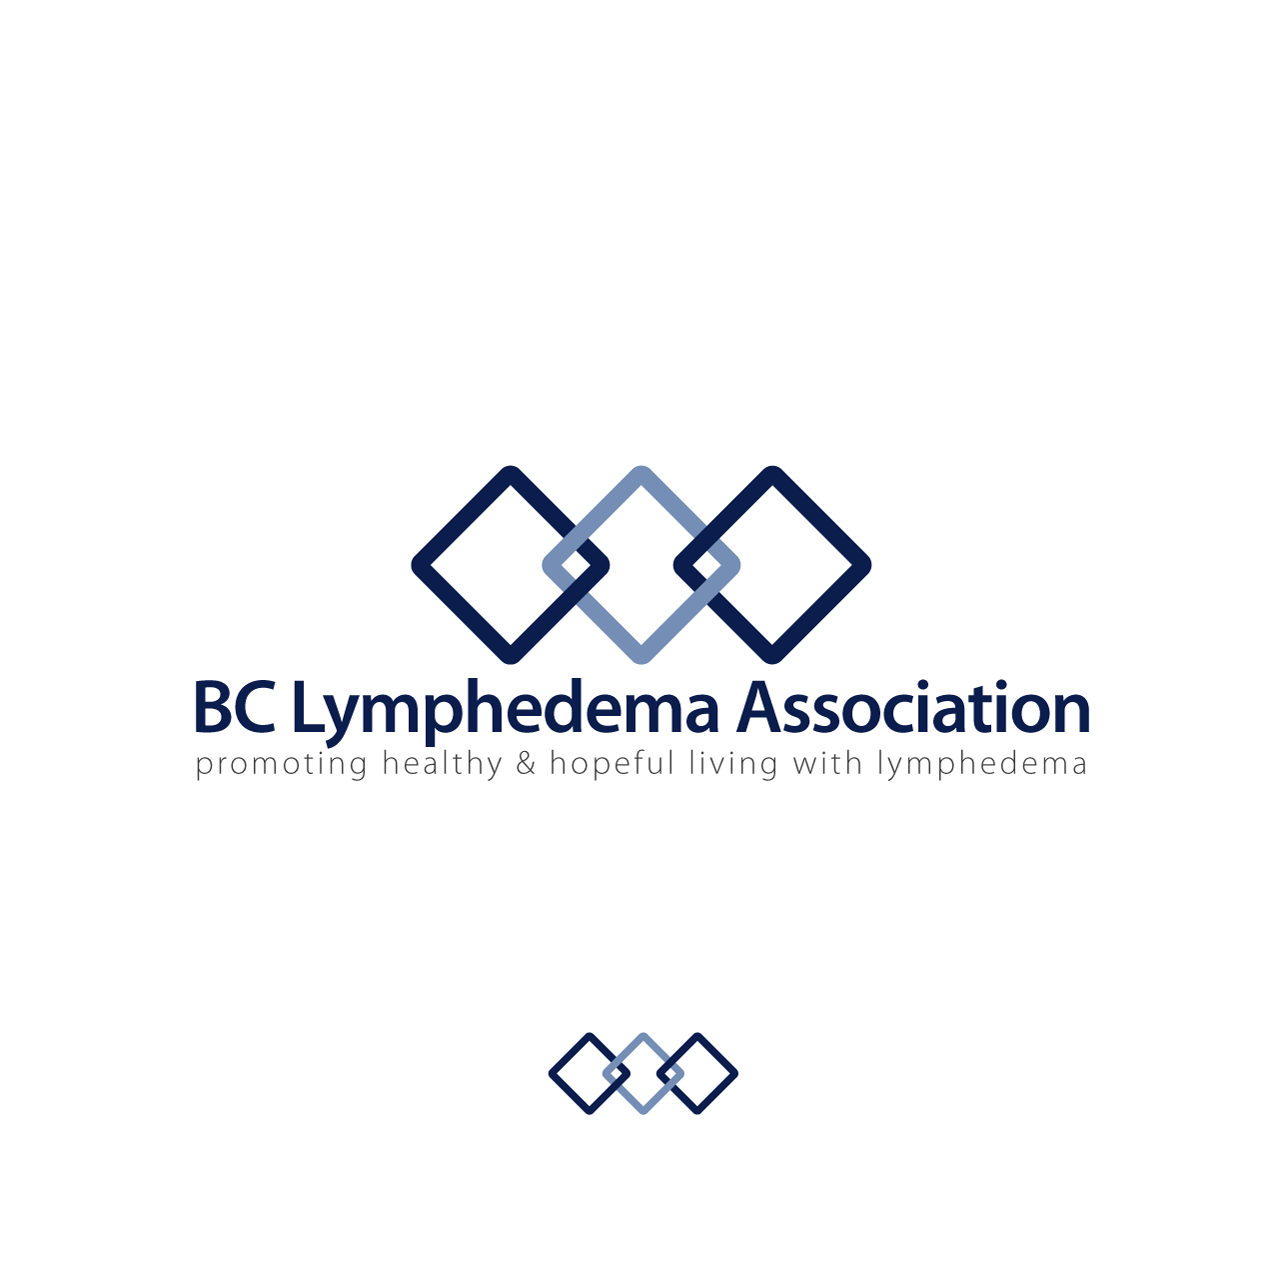 Logo Design by umxca - Entry No. 40 in the Logo Design Contest BC Lymphedema Association.